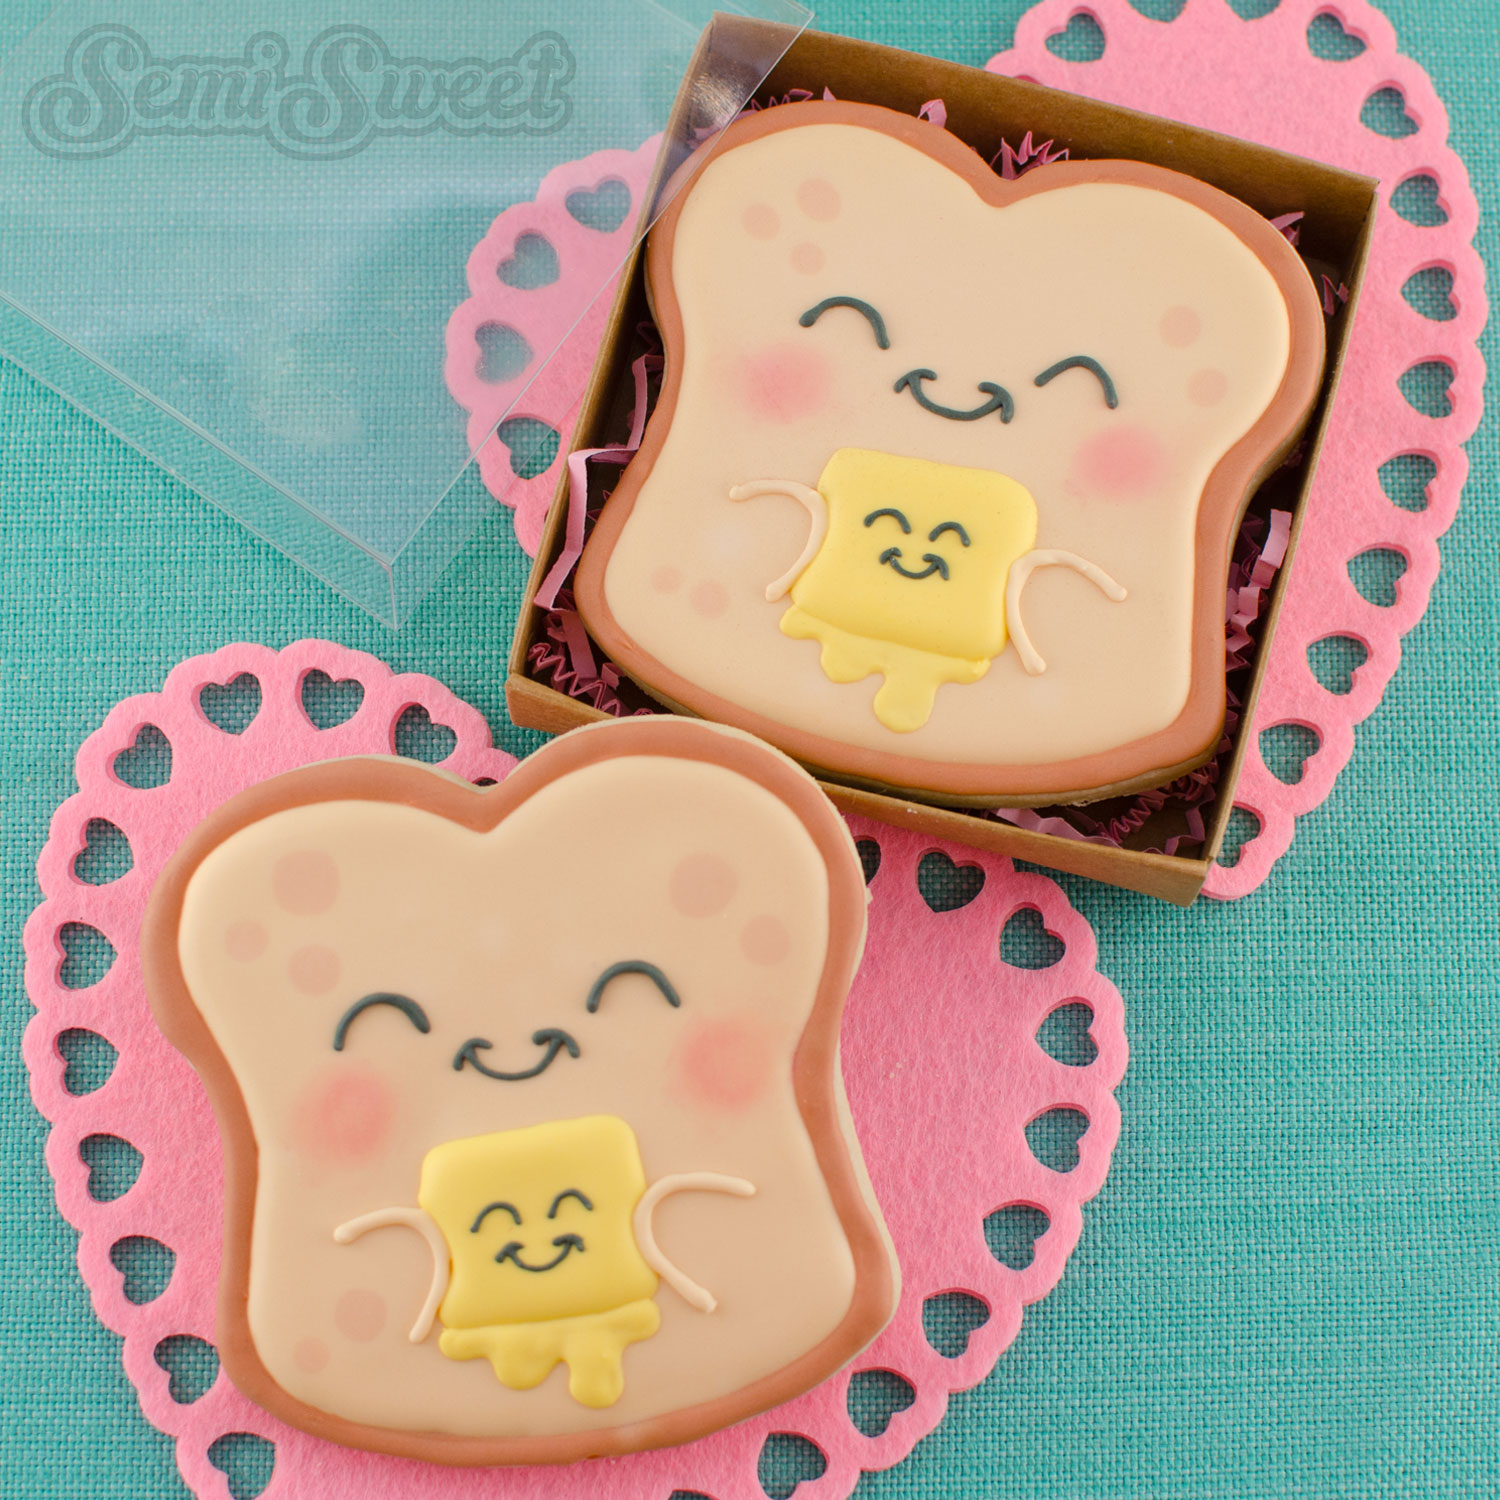 Bread and butter Valentine cookies by SemiSweetDesigns.com